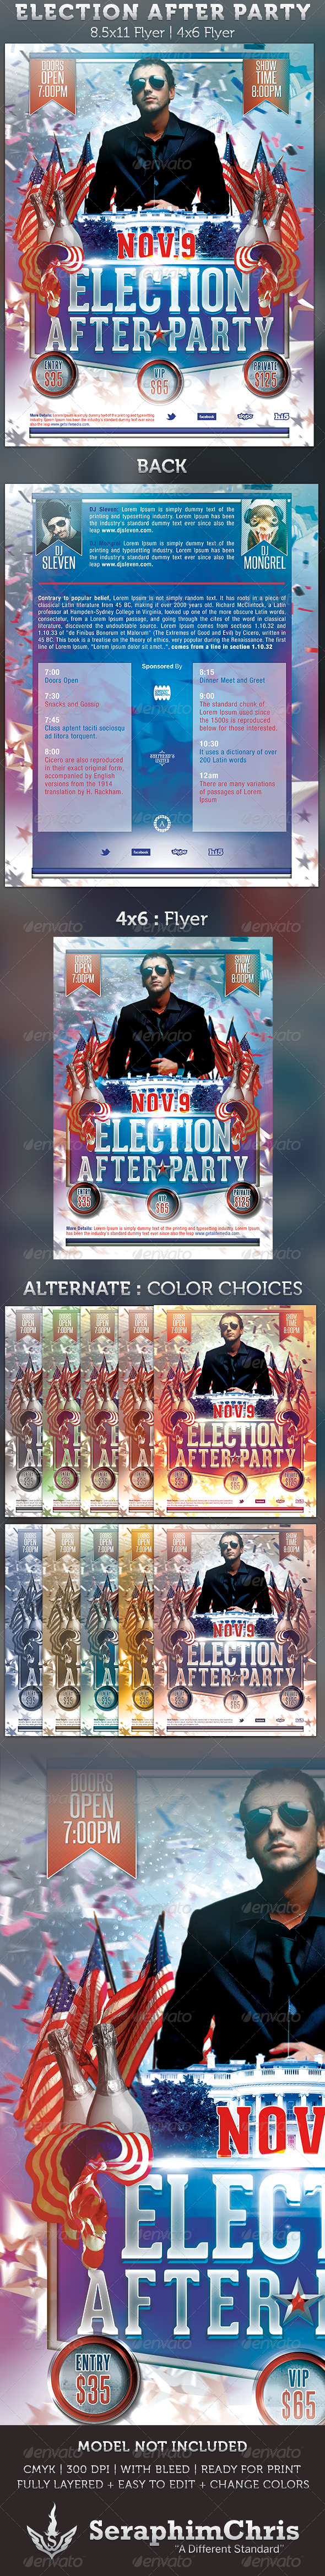 GraphicRiver Election After Party Event Flyer Template 3237345